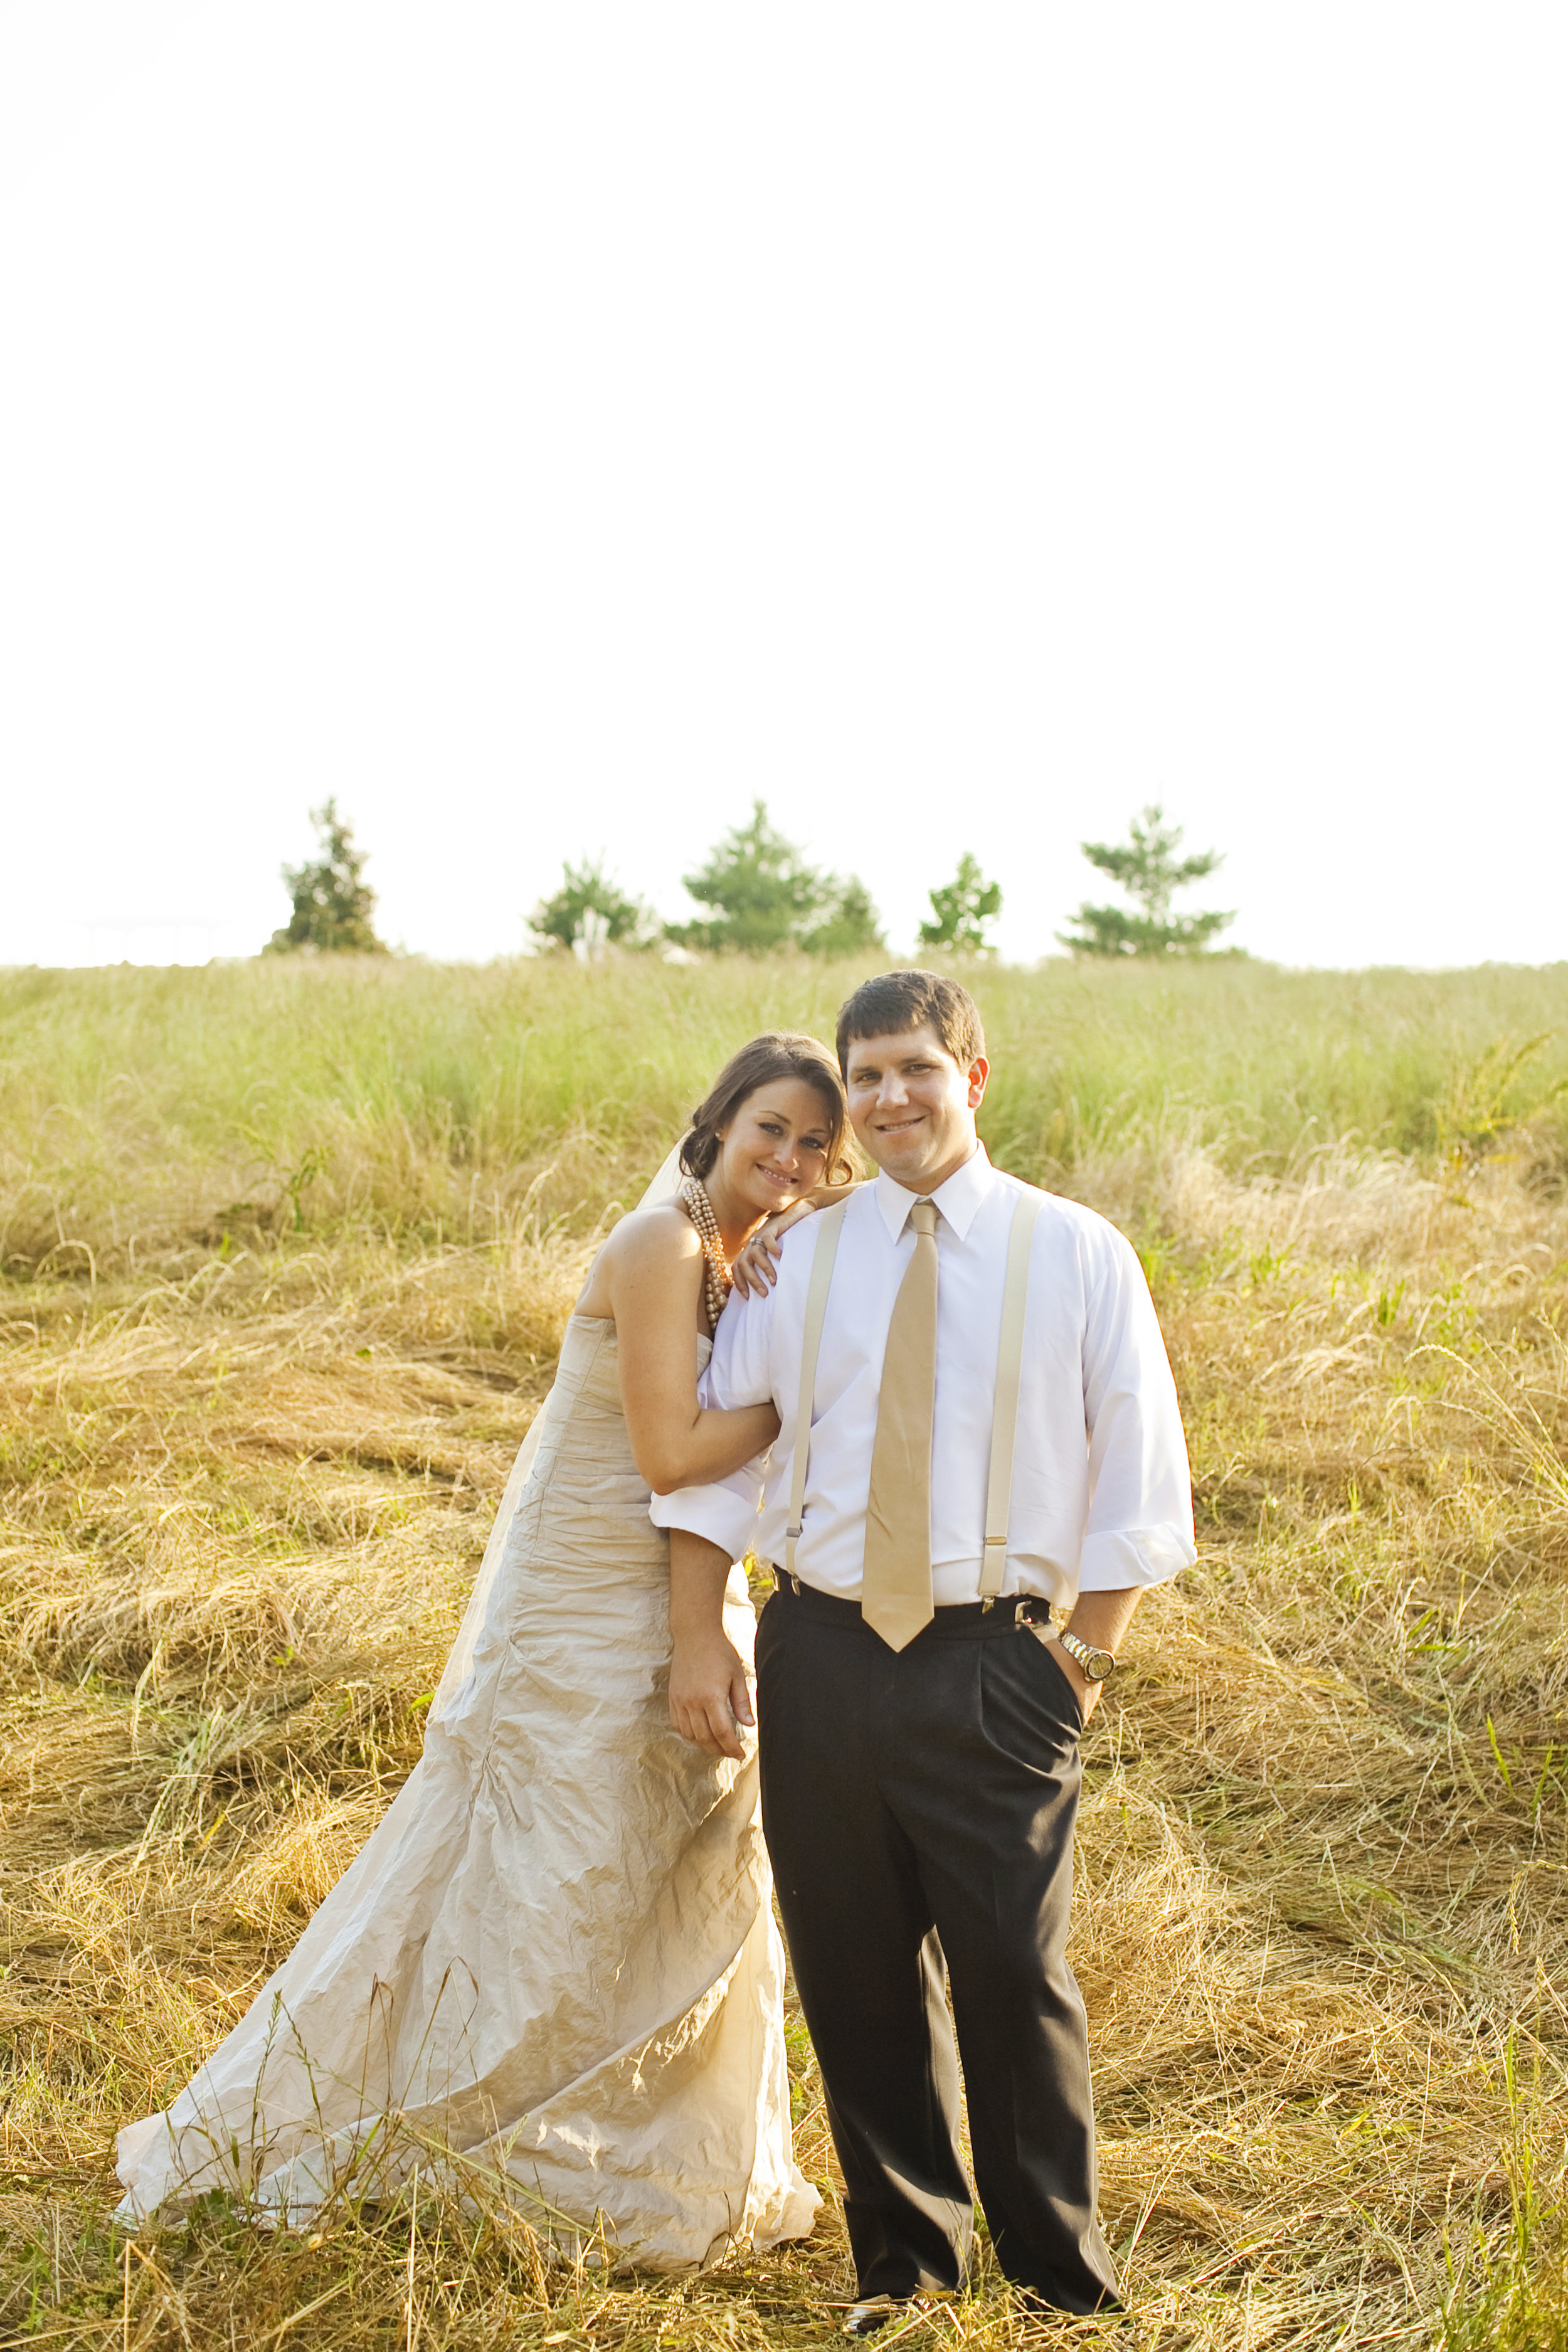 bride and groom in a field / heirloomed